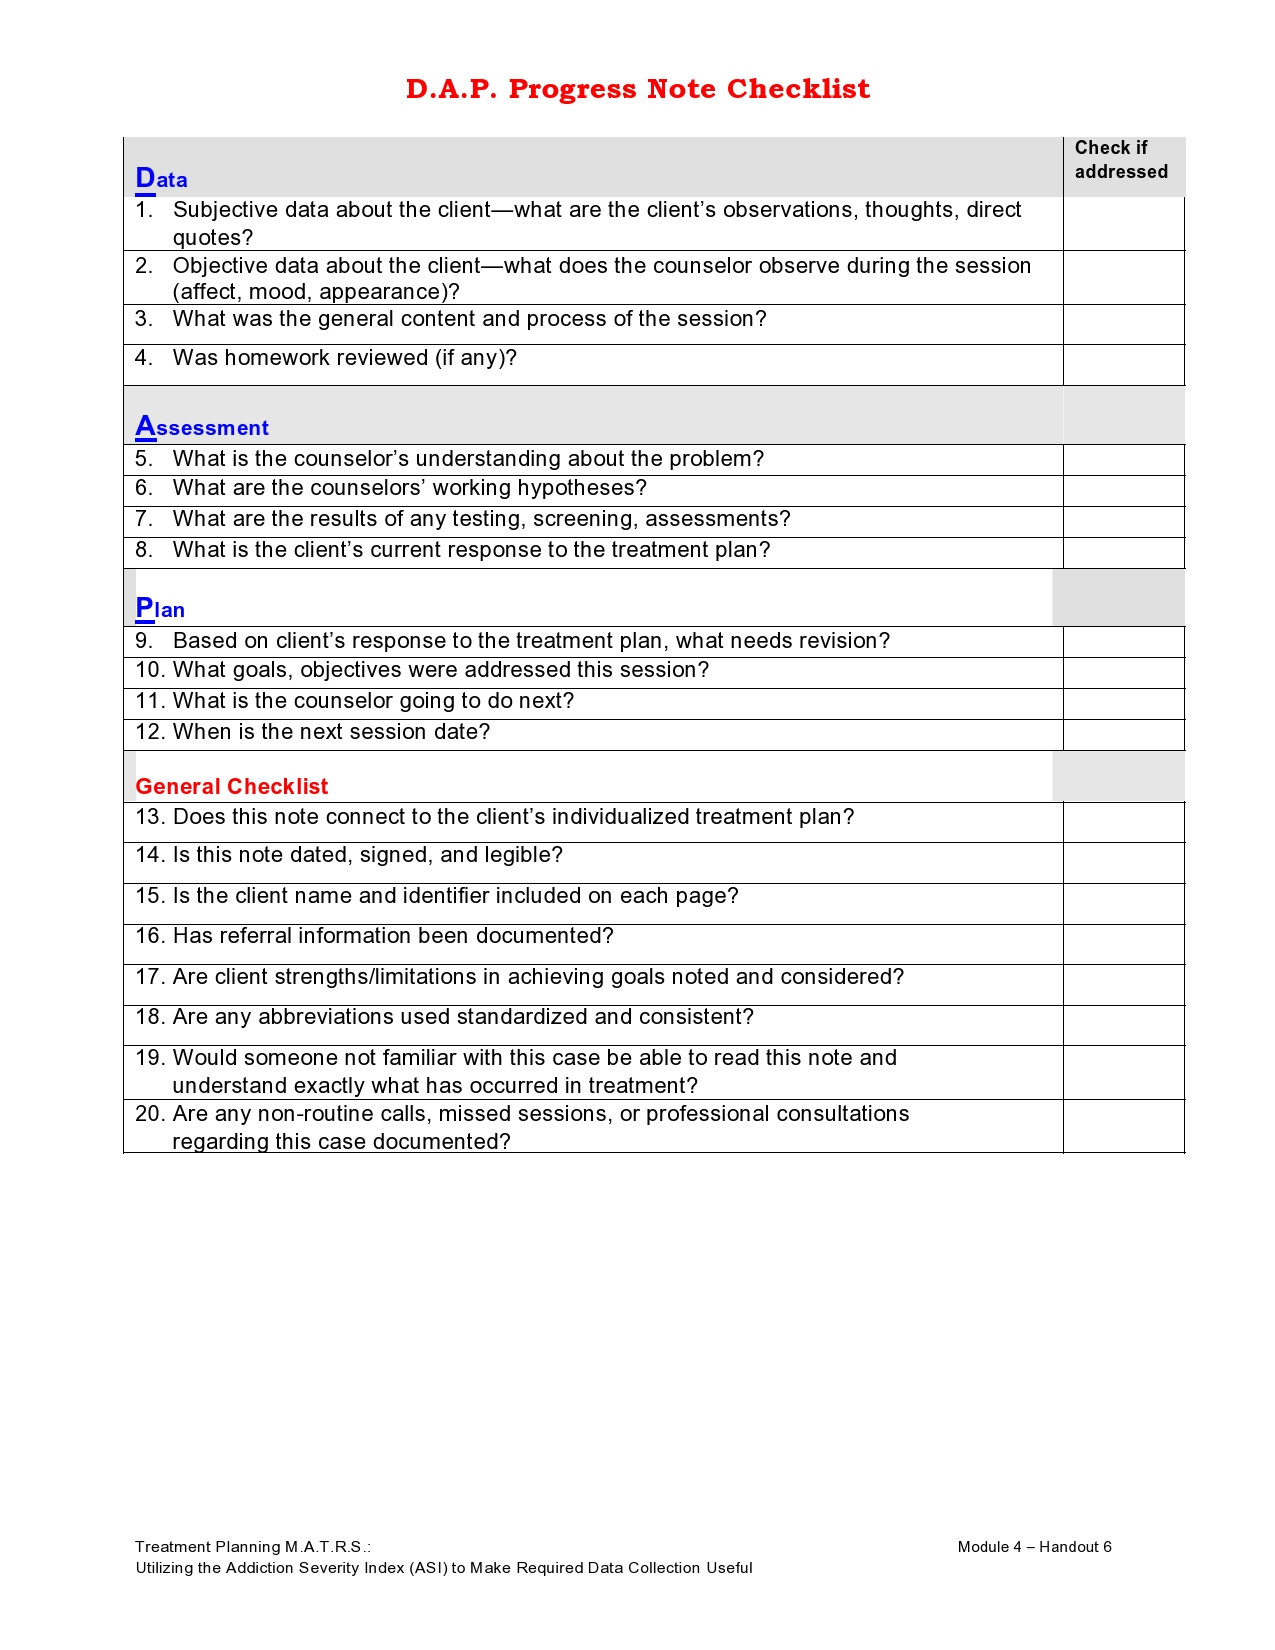 Clinical Progress Notes Template